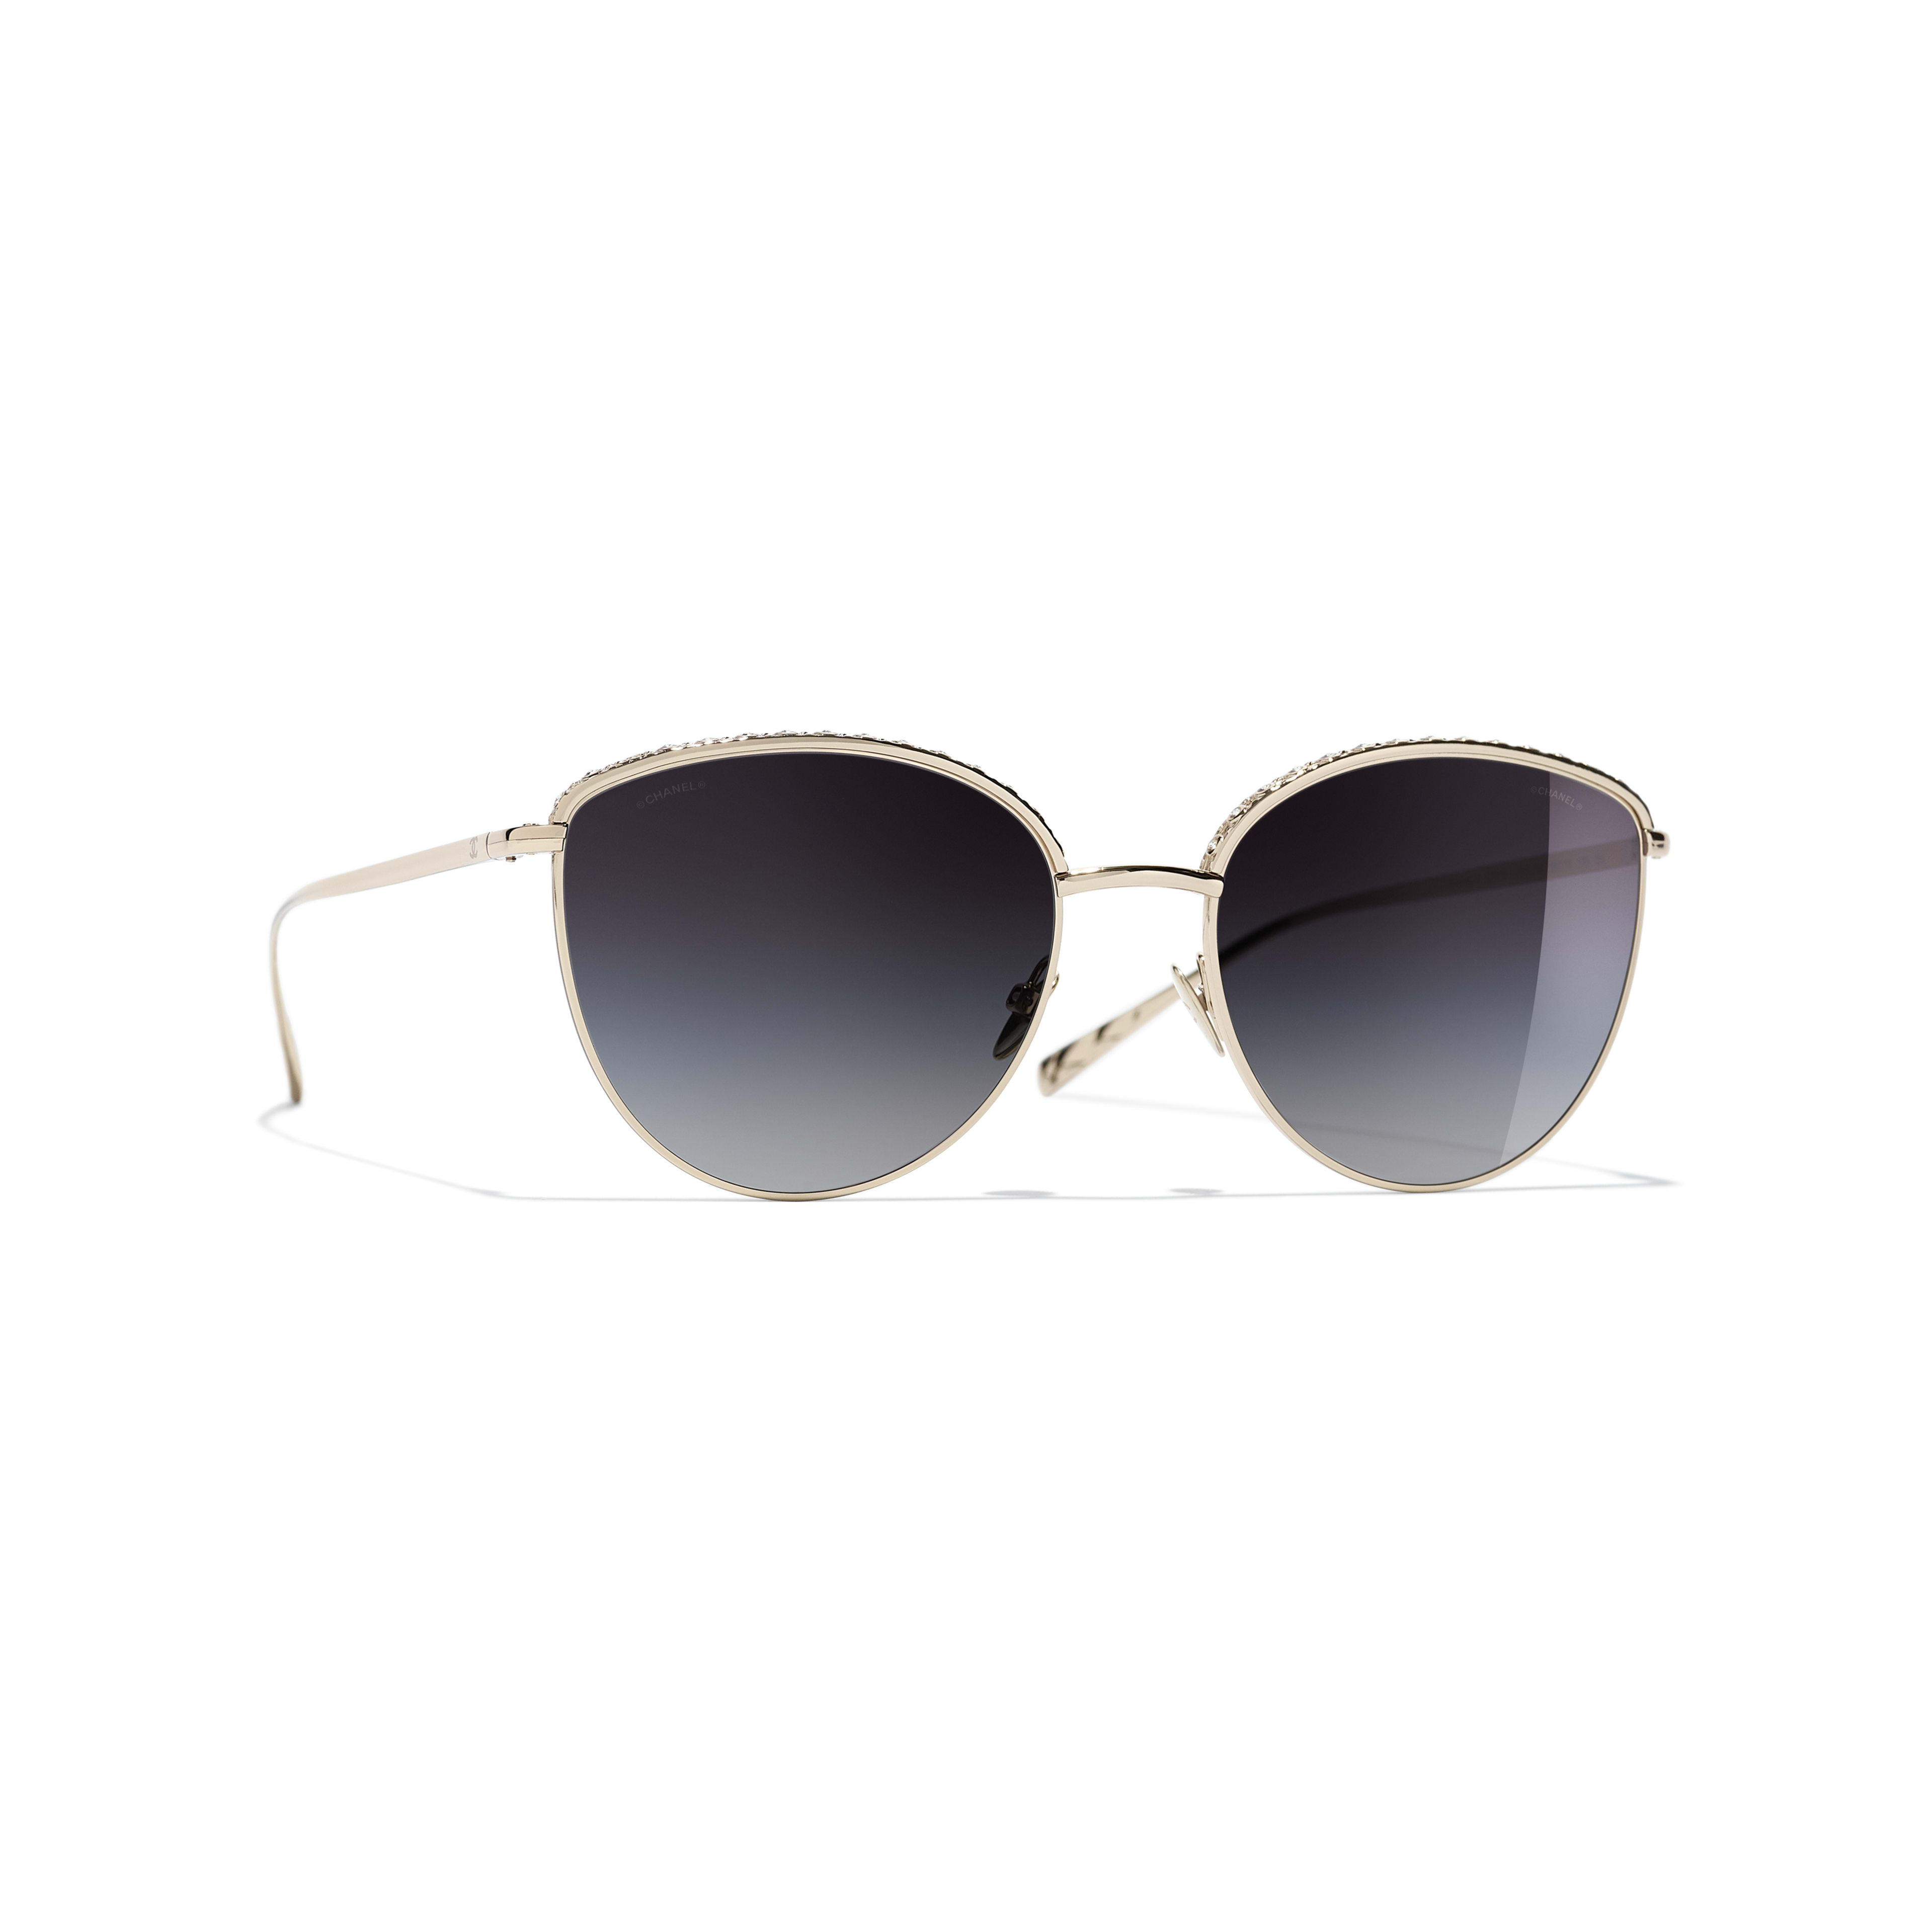 Pantos Sunglasses - Gold - Metal & Strass - Default view - see full sized version